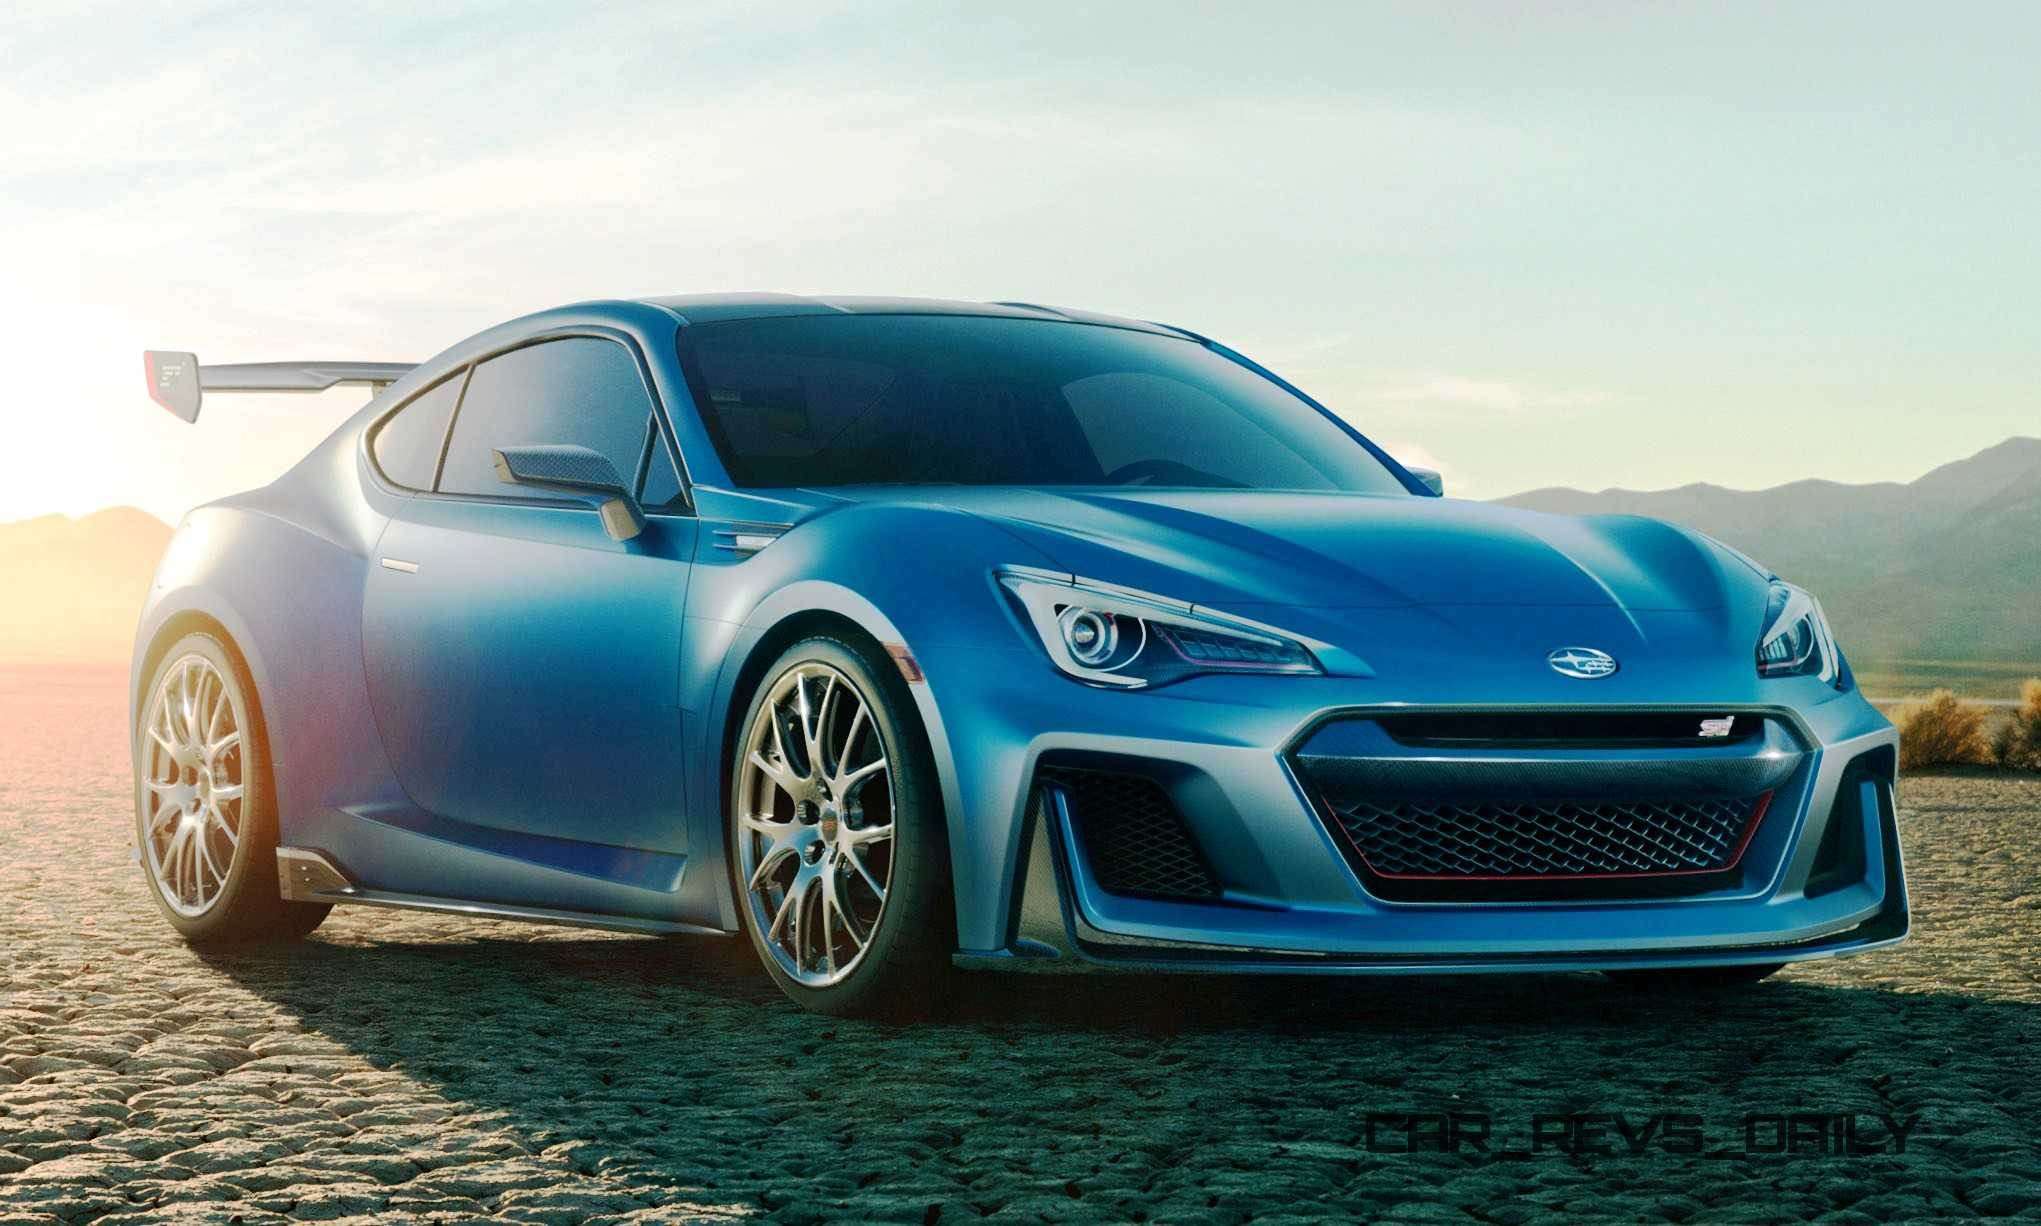 2019 Subaru BRZ STI Concept | Car Photos Catalog 2018